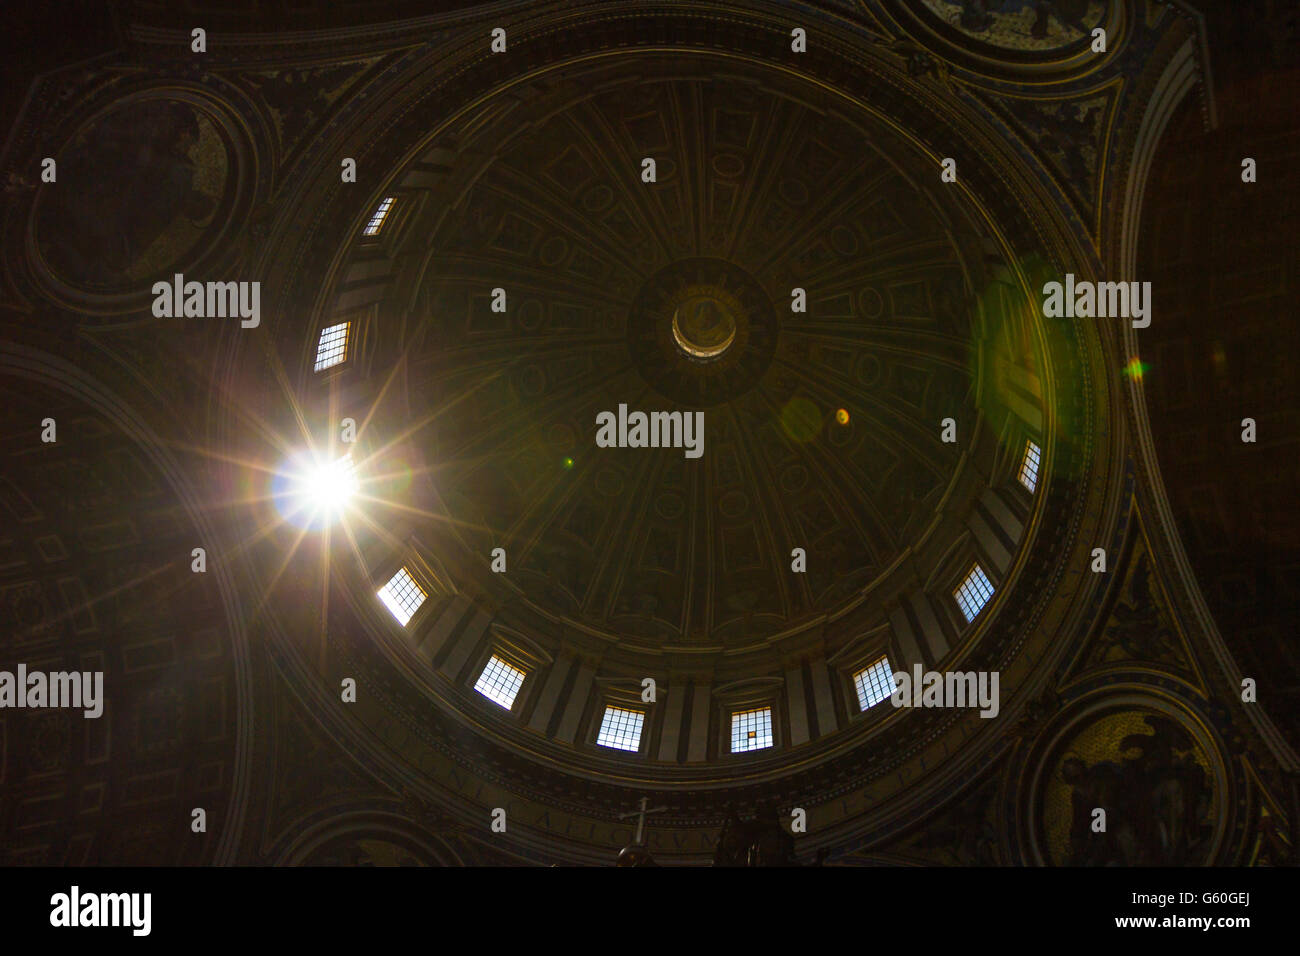 Dome in Saint Peters Basilica - Stock Image